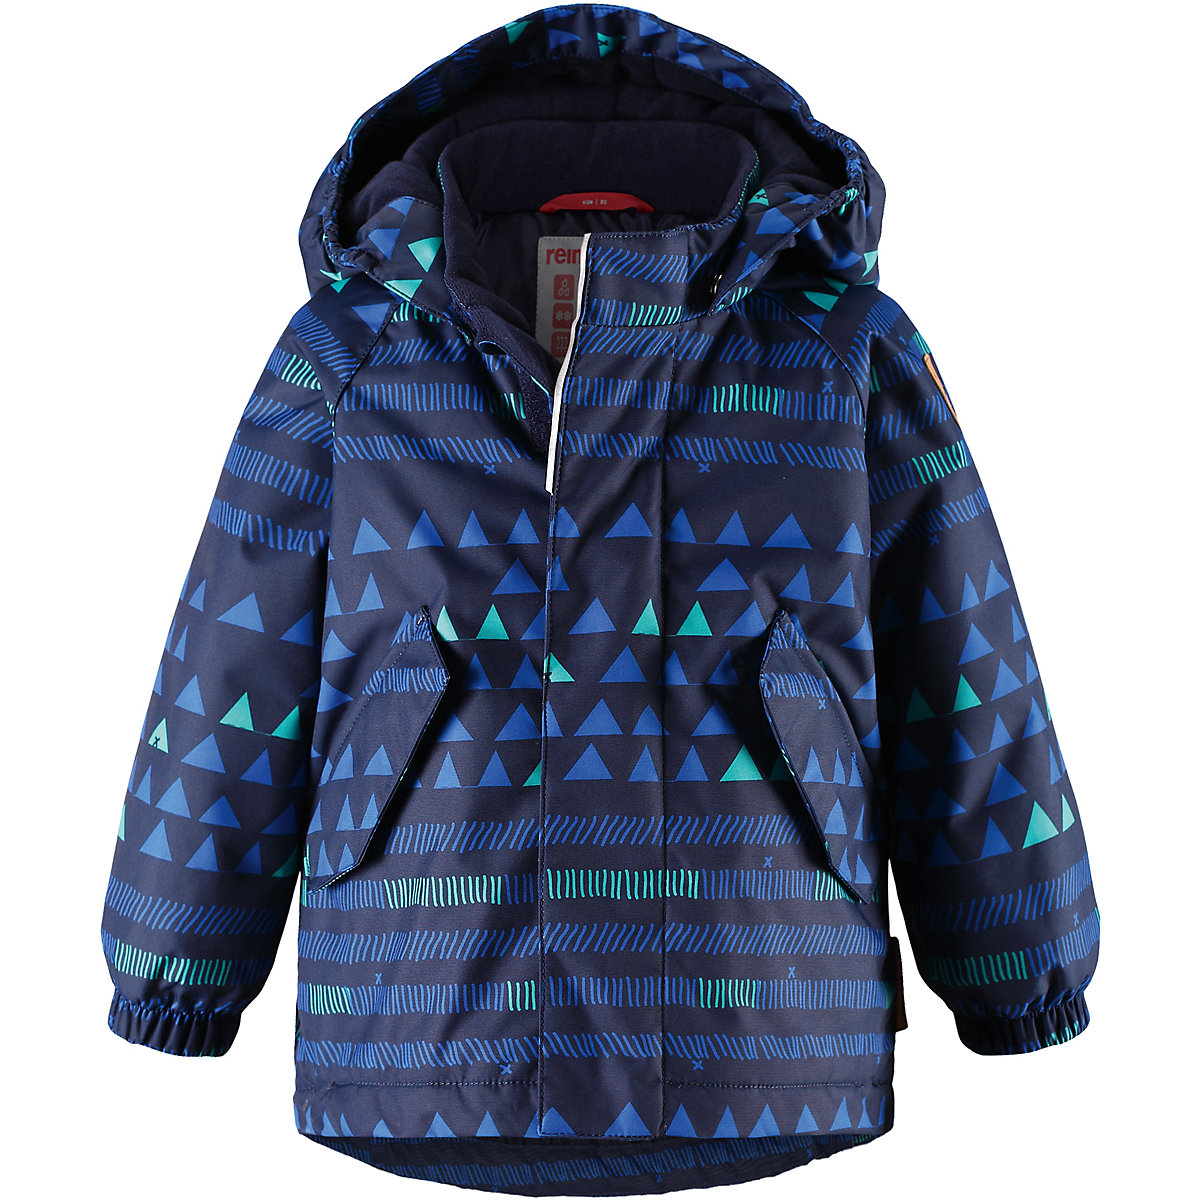 REIMA Jackets 8665426 for boys polyester winter  fur clothes boy brand orangemom winter boys baby clothes 0 24m infant costume for a boy coat jackets soft high quality outerwear